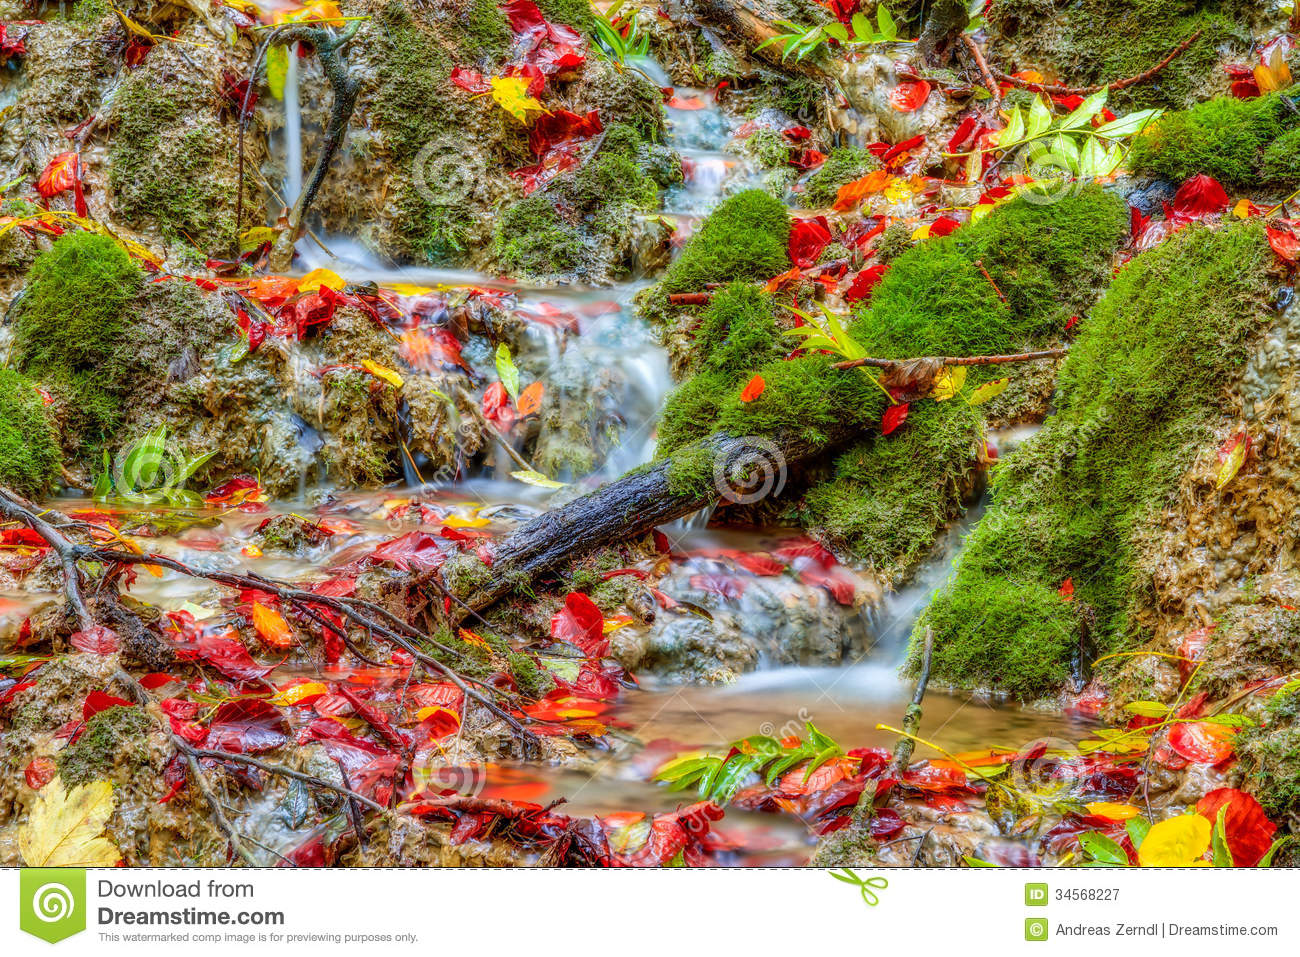 Kamin Clipart Amazing Autumn Forest Creek Royalty Free Stock Photography